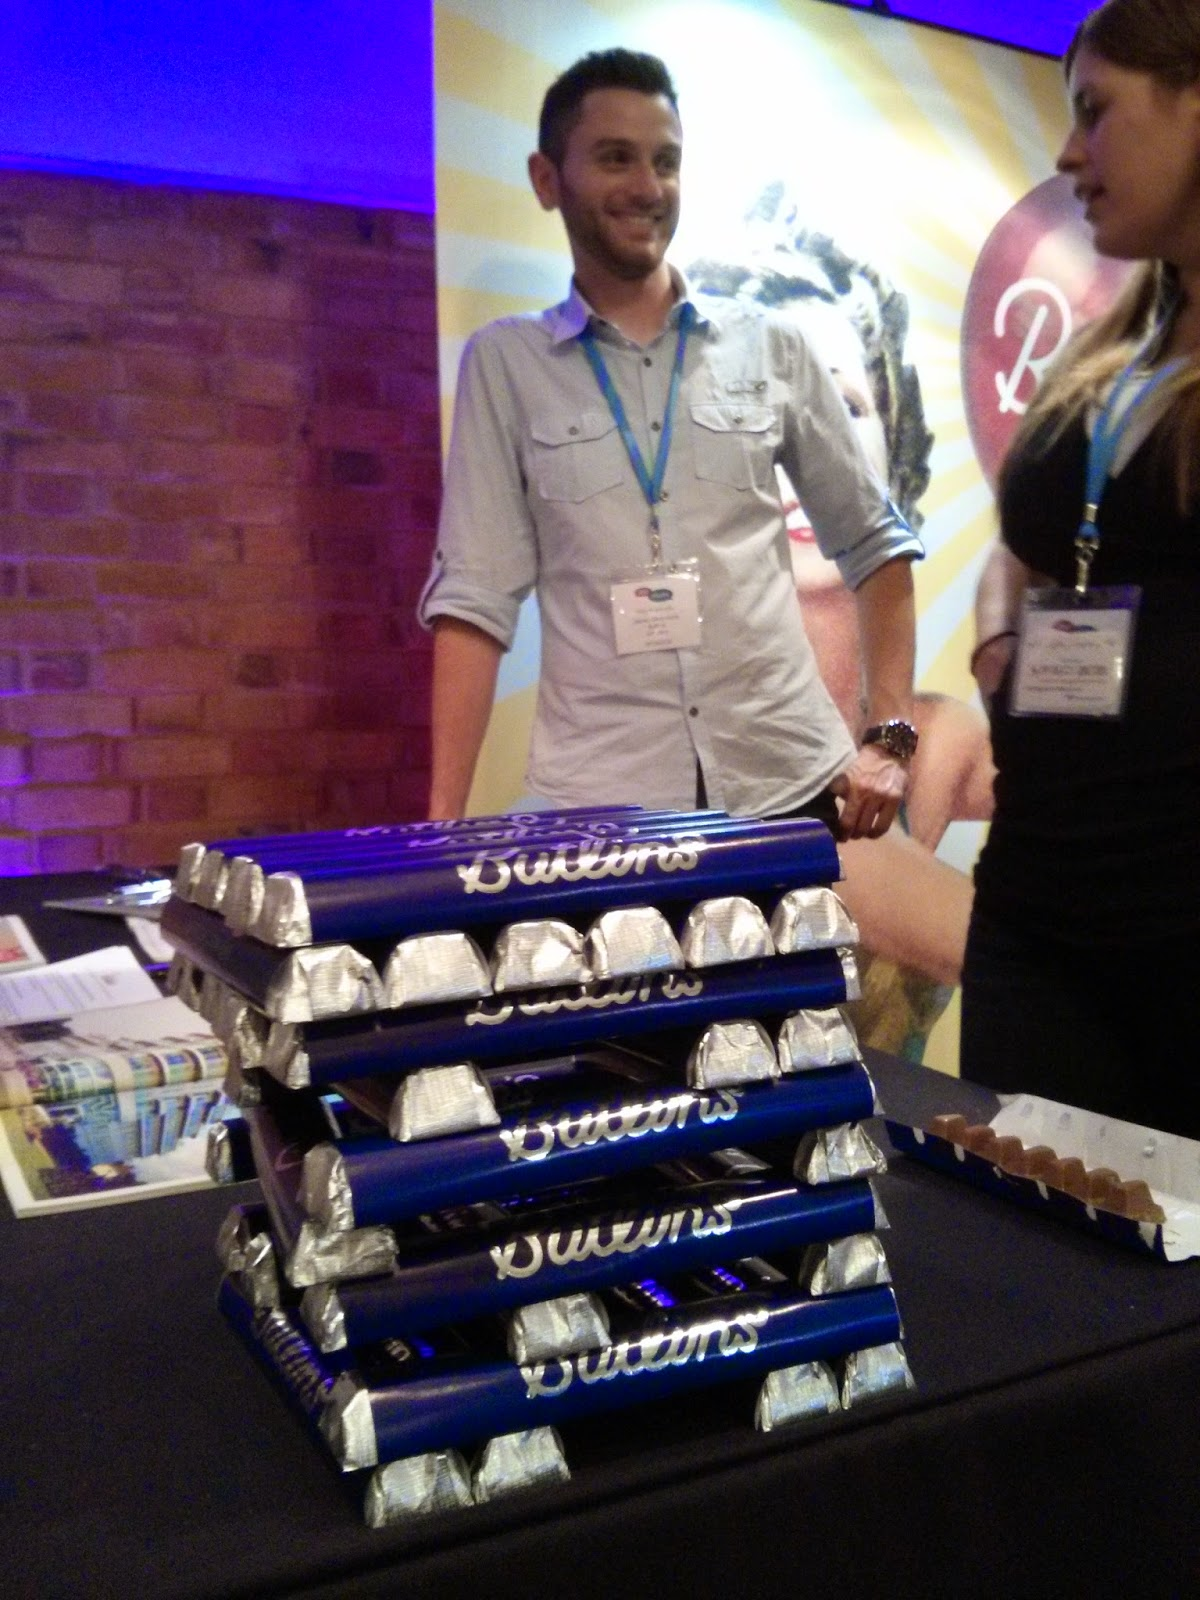 James Butlins Chocolate Jenga